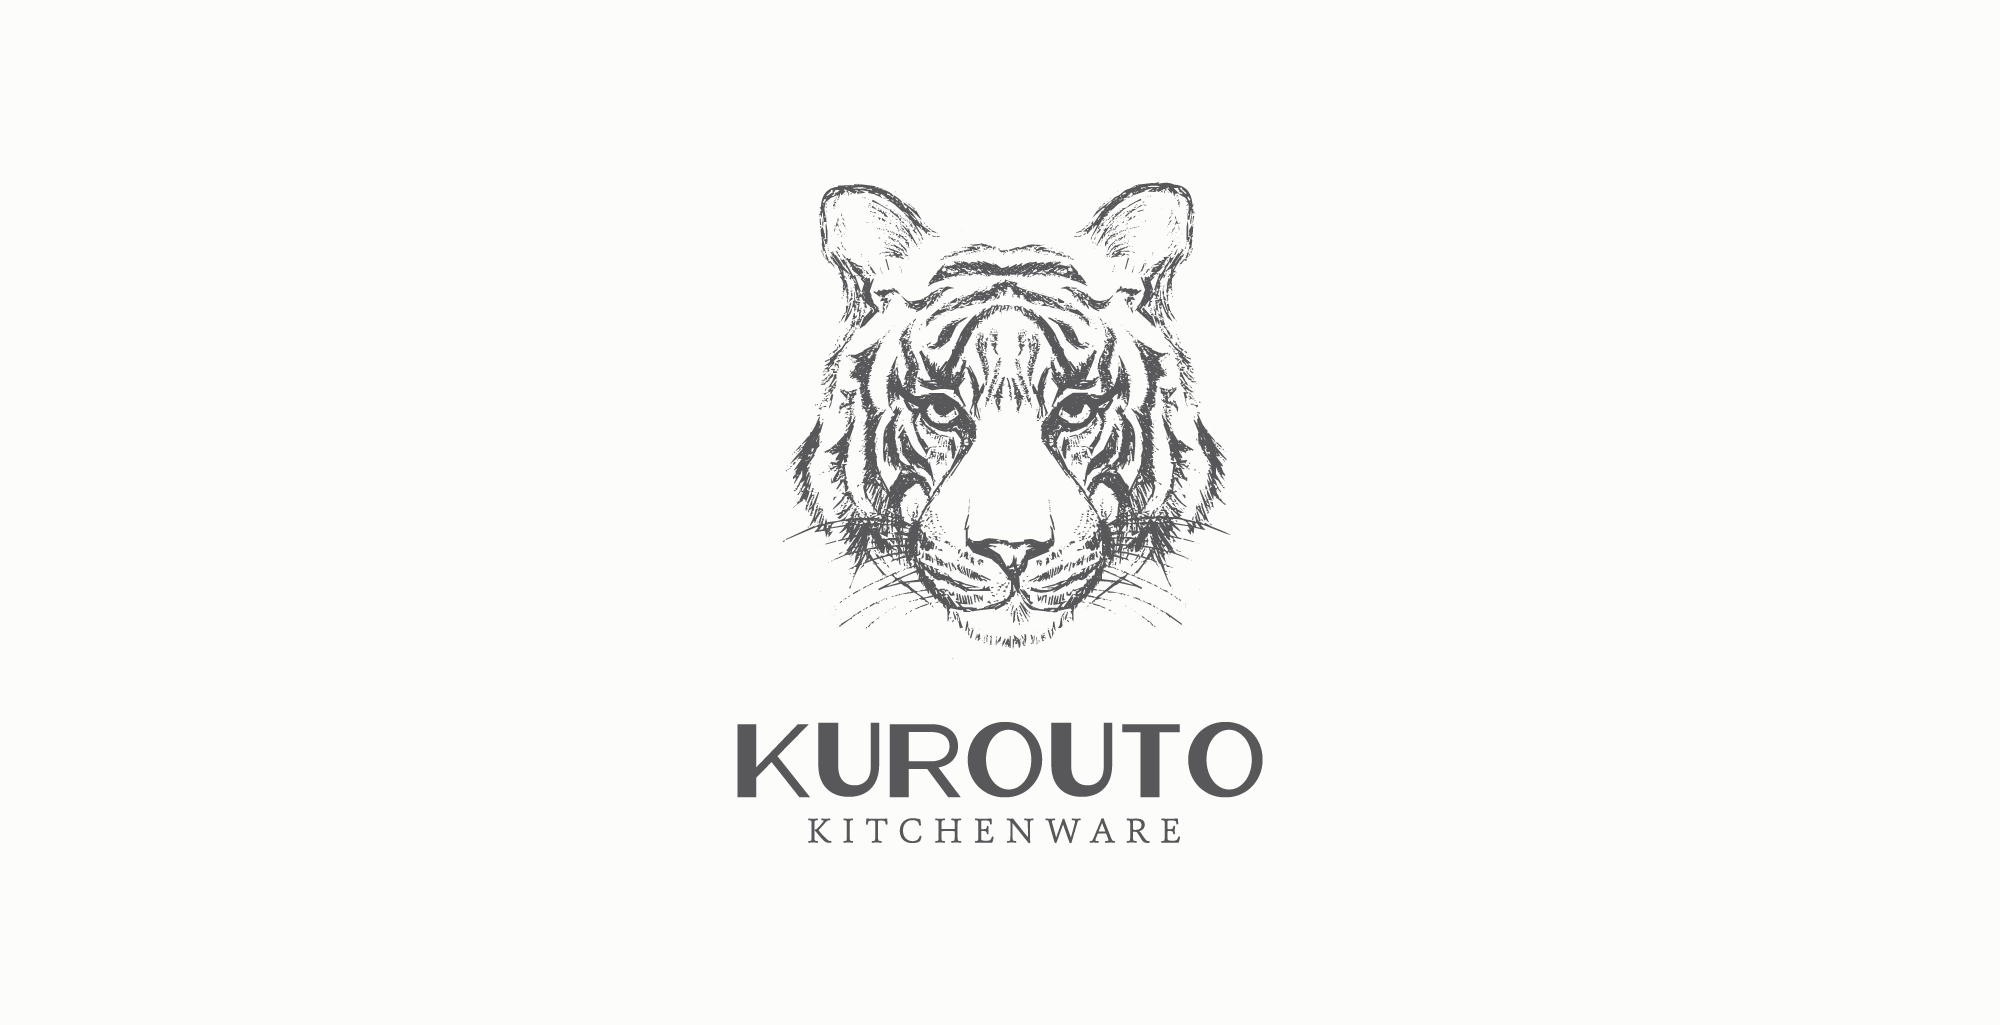 Brand Identity Design by Amarie Design Co. for Kurouto Kitchenware Lifestyle Brand